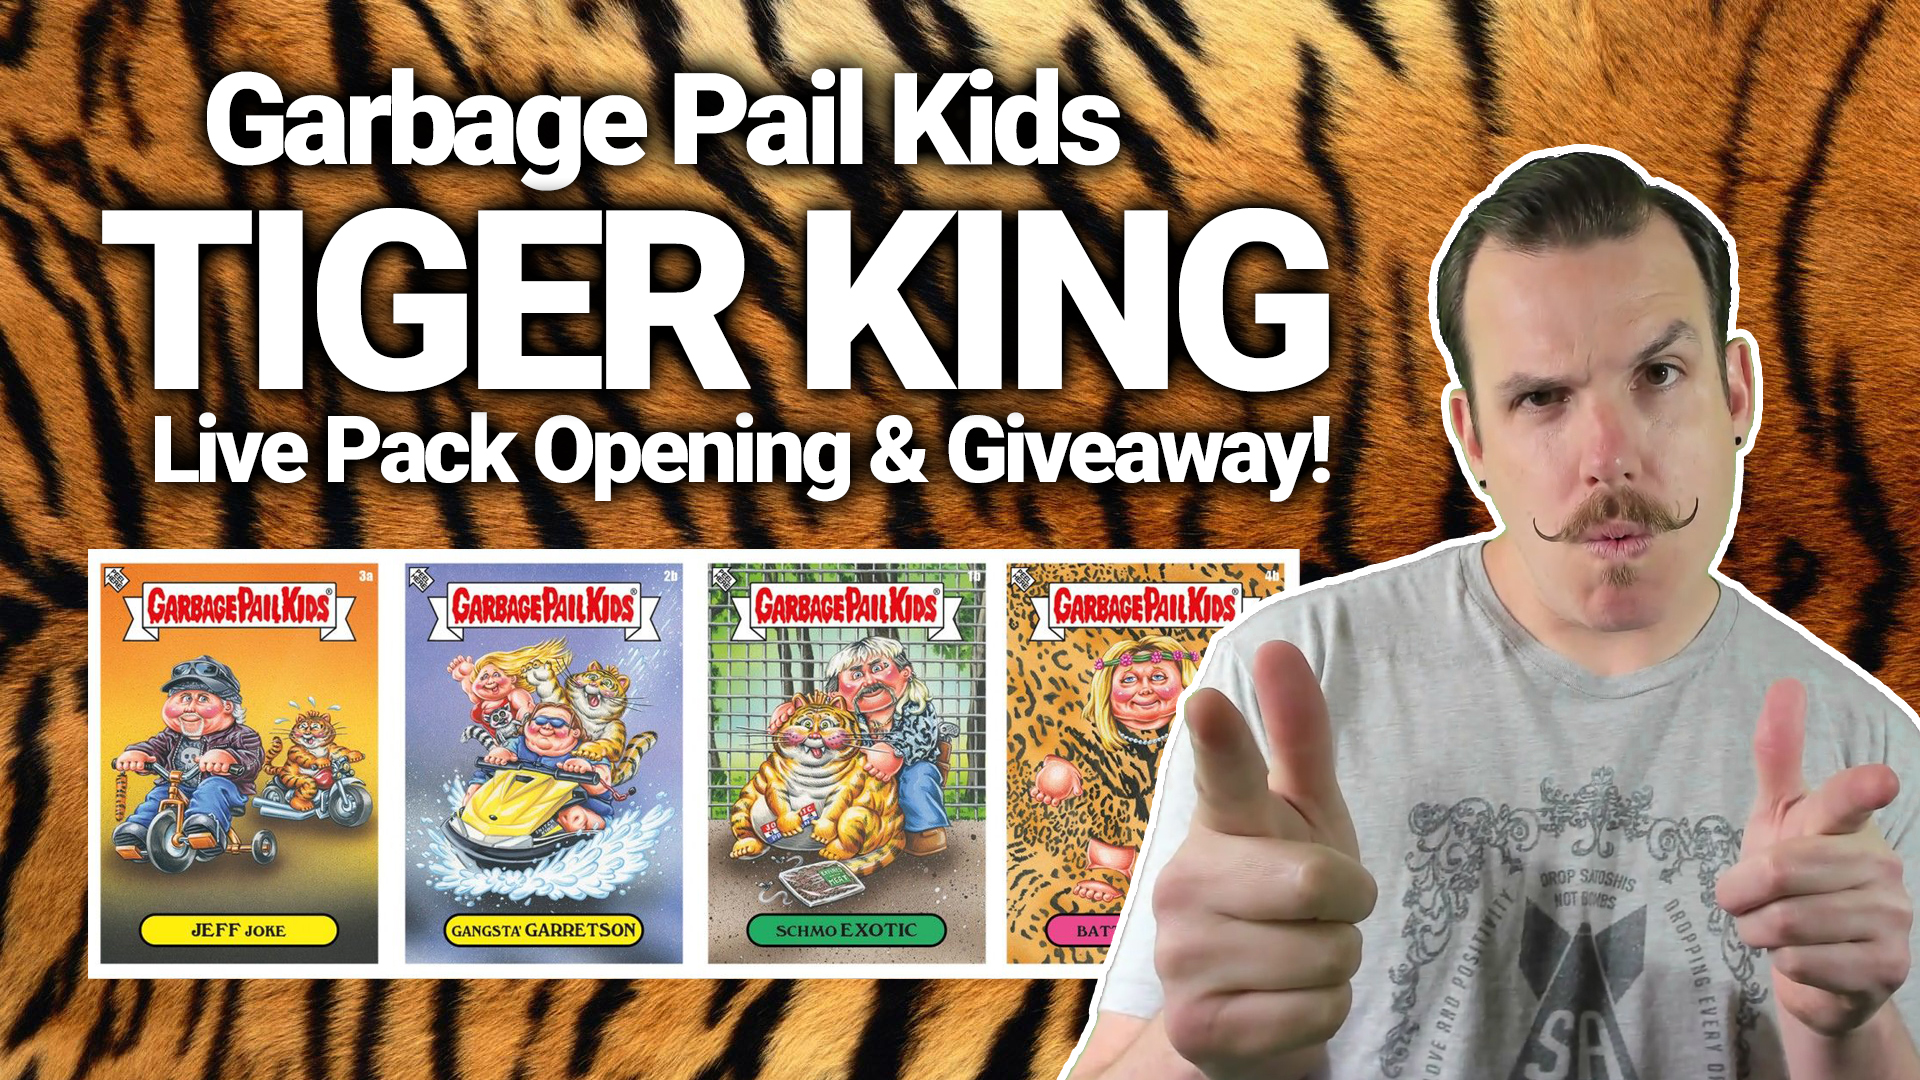 garbage pail kids gpk garbagepailkids was topps digital buy marketplace sell cards collectibles nft cryptocurrency